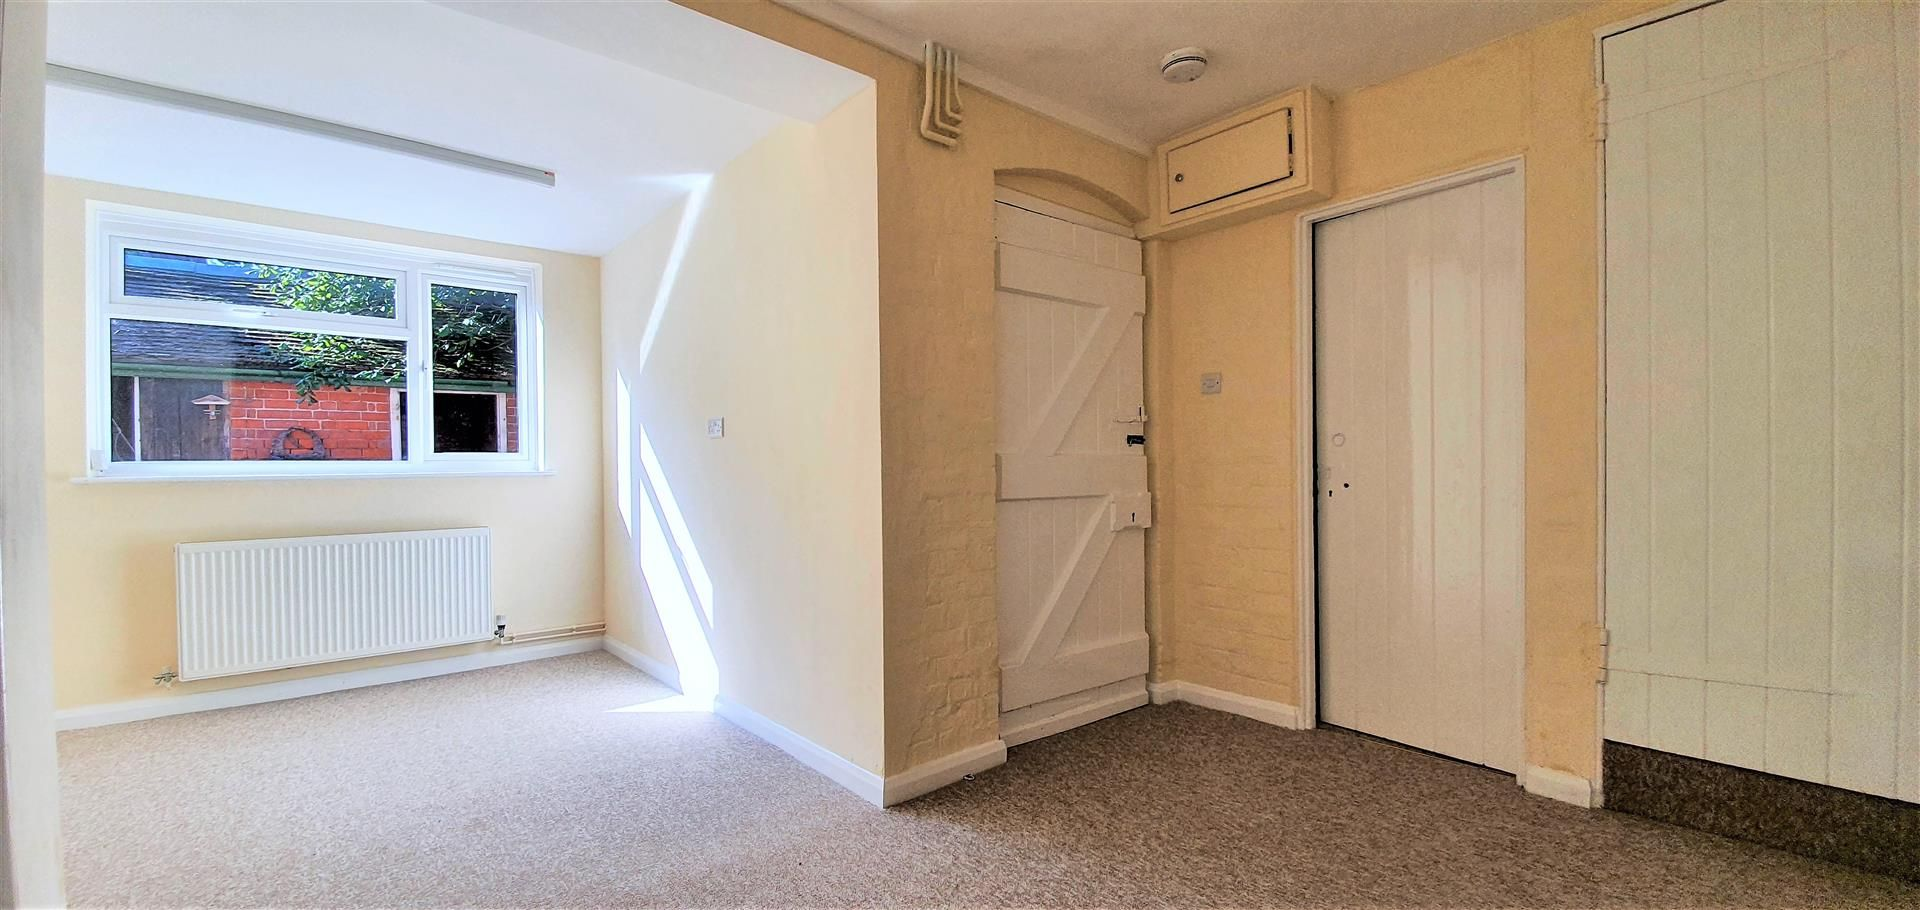 4 bed house to rent in Breinton  - Property Image 7